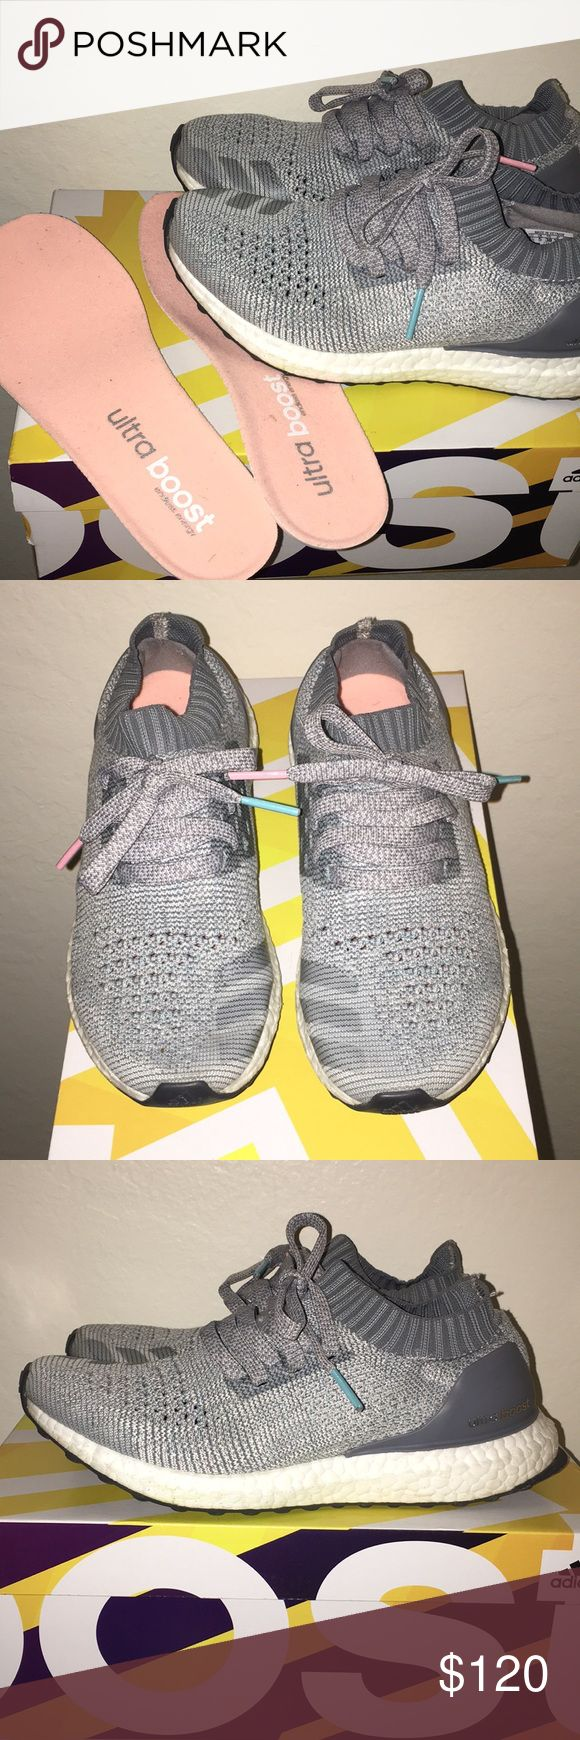 UltraBOOST Uncaged Light Grey UltraBoosts with subtle pink details. Size 6.5 in women's. Great condition, only used a few times. Let me know if you need anymore pictures! adidas Shoes Athletic Shoes